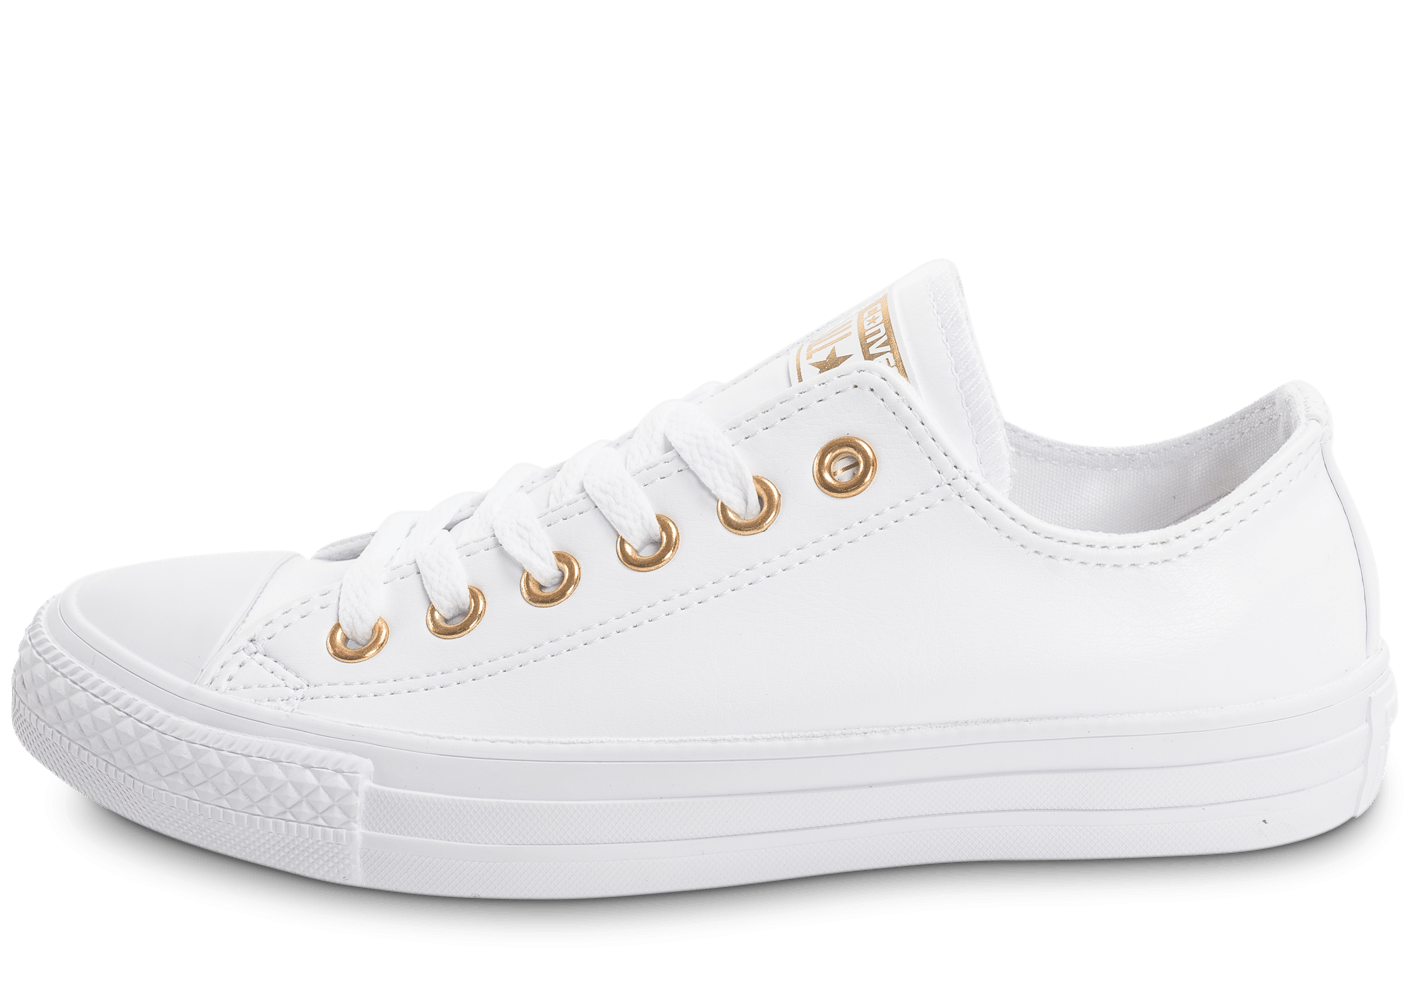 converse chuck taylor all star ox blanche et or chaussures black friday chausport. Black Bedroom Furniture Sets. Home Design Ideas